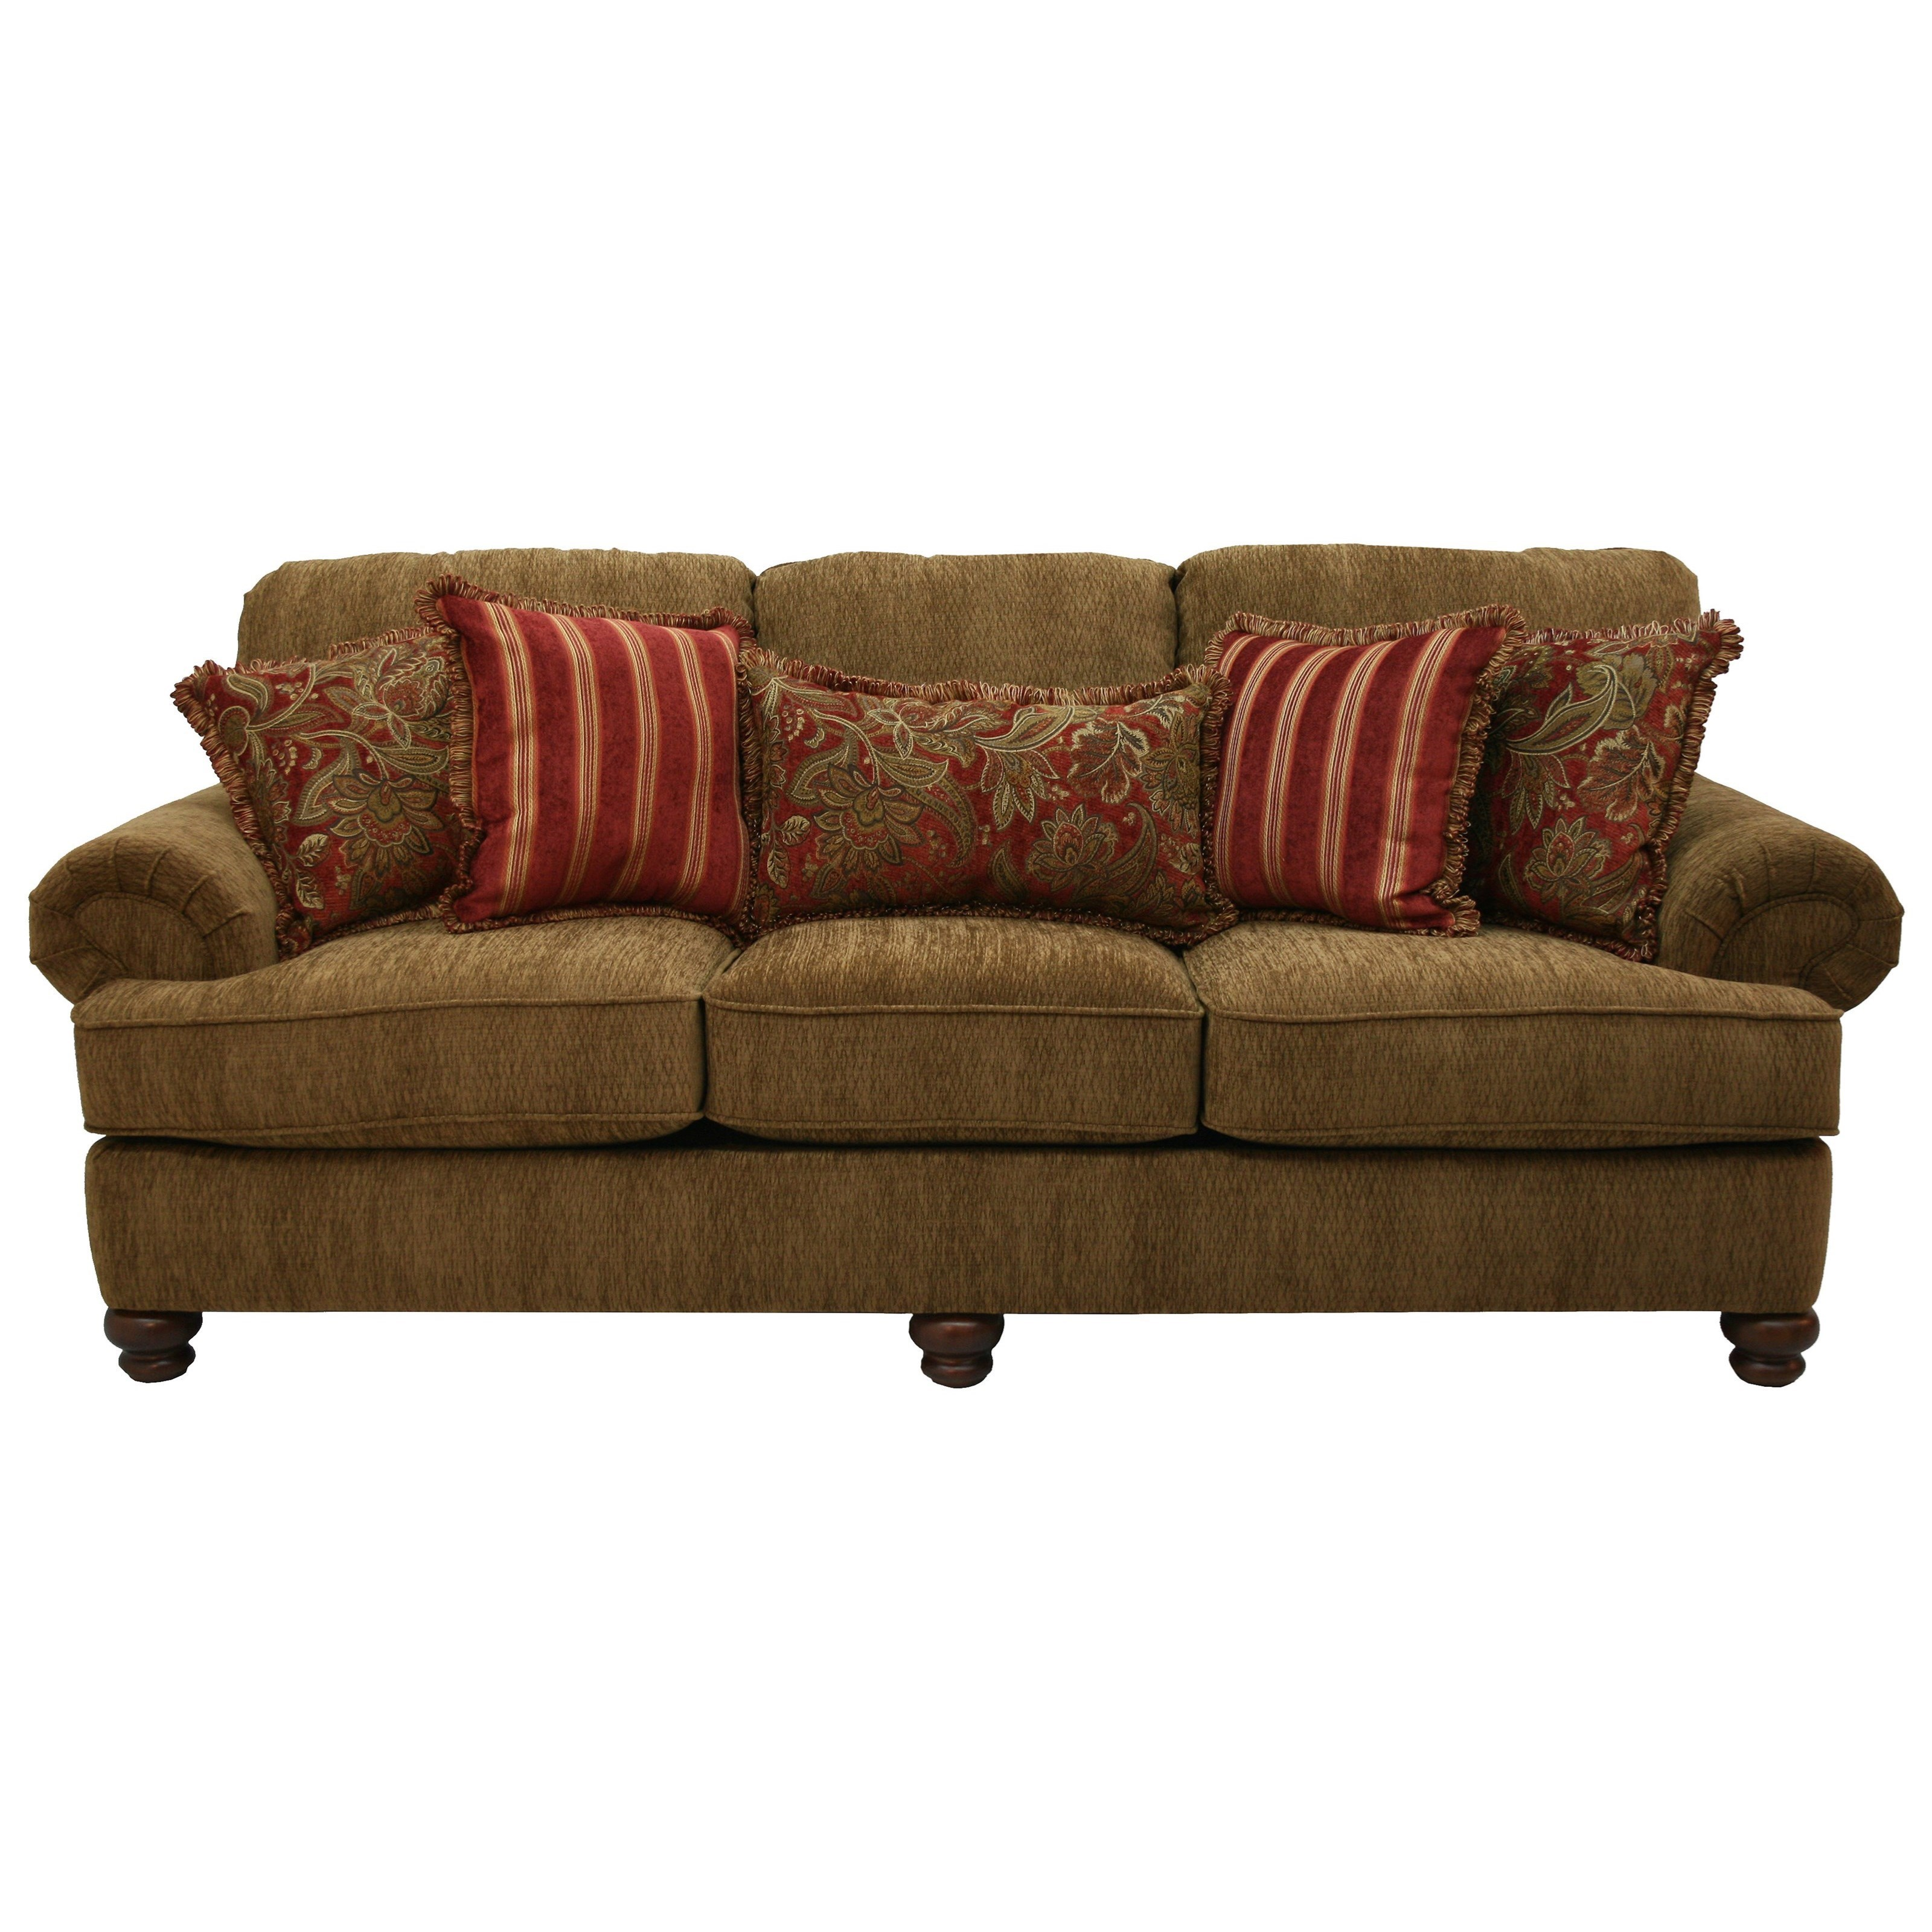 Jackson Furniture Belmont Sofa With Rolled Arms And Decorative Pillows    Zaku0027s Fine Furniture   Sofas